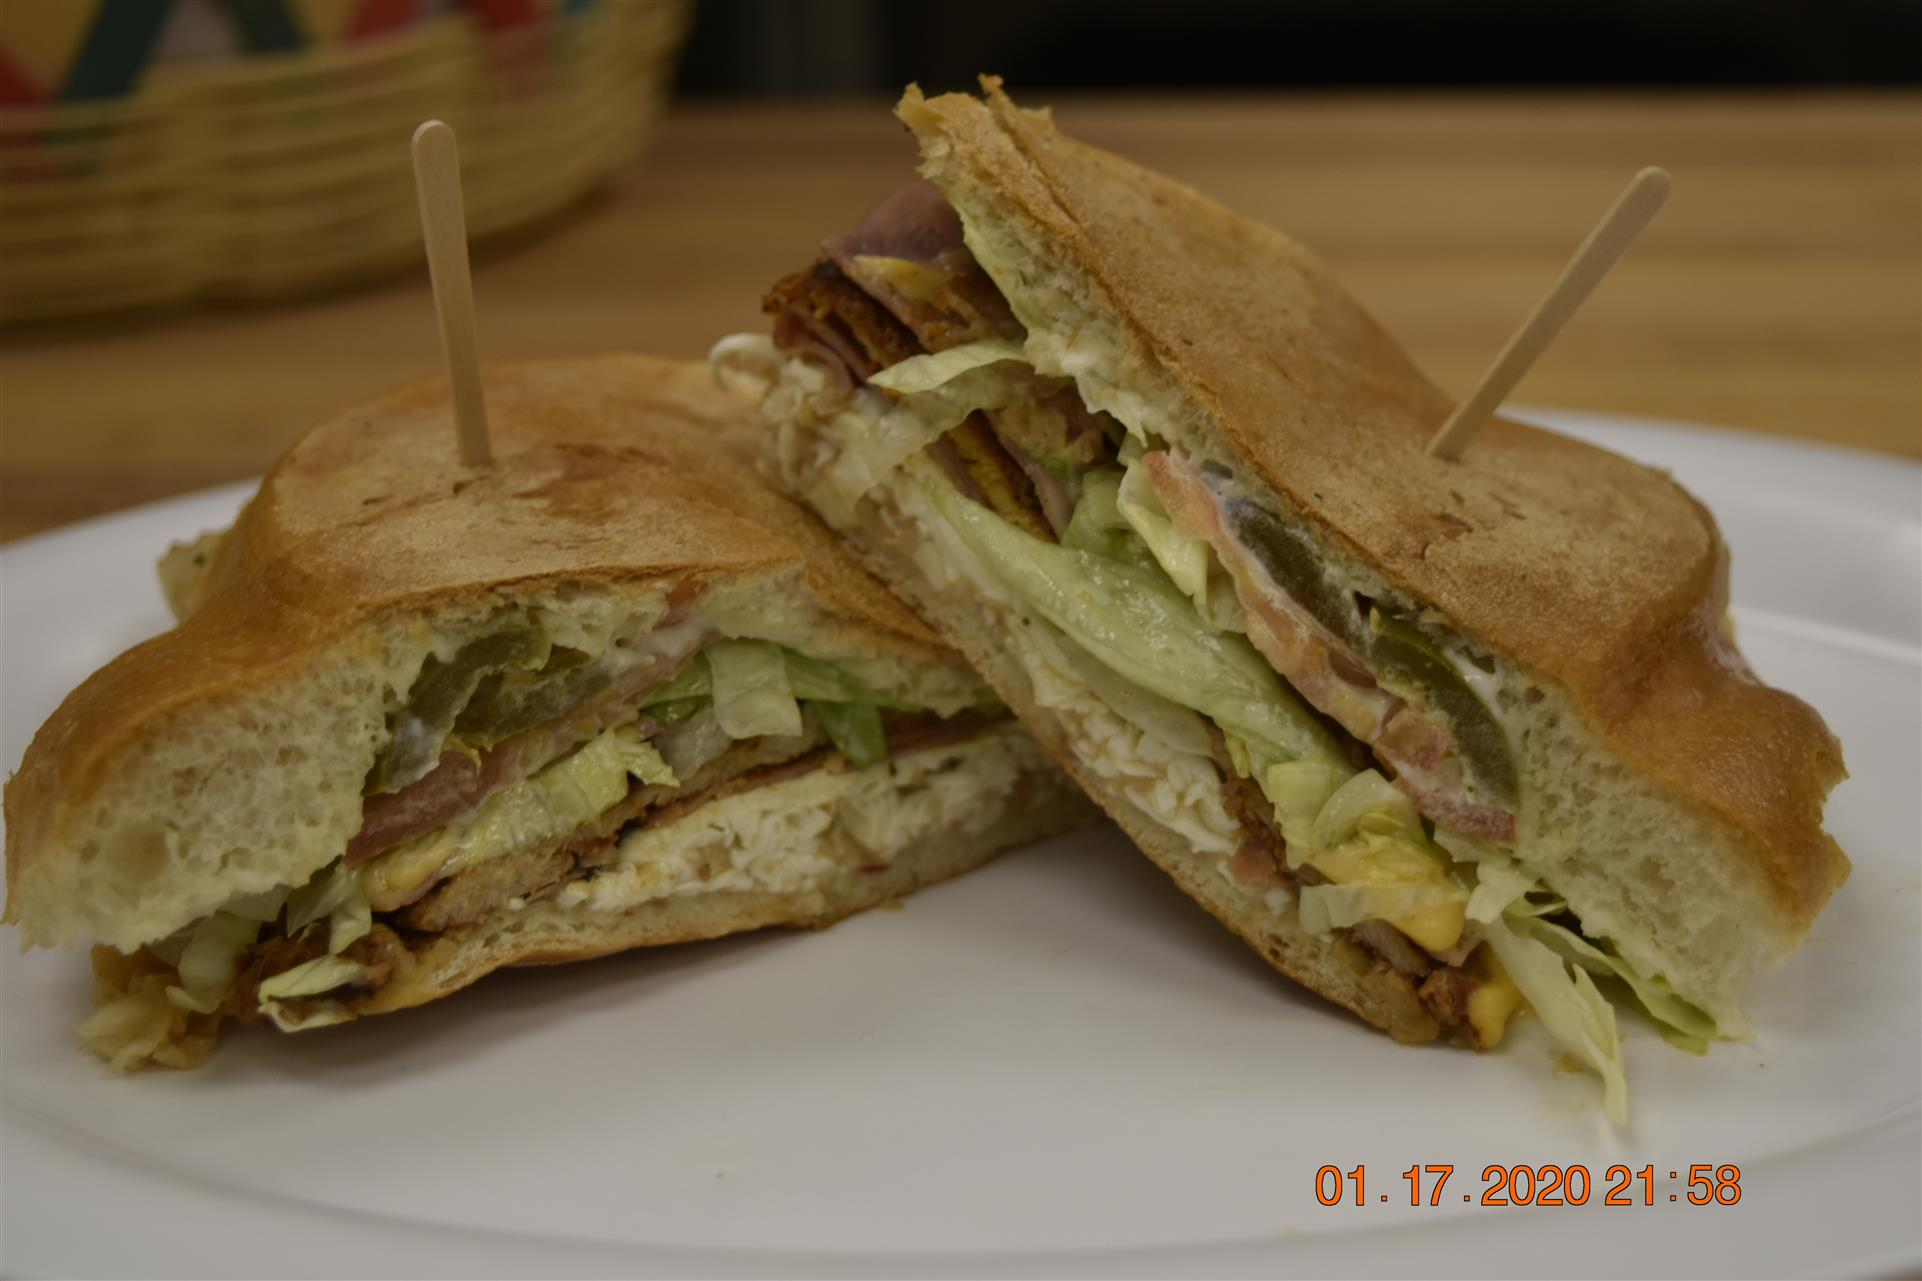 two halves of a deli sandwich with ham and lettuce